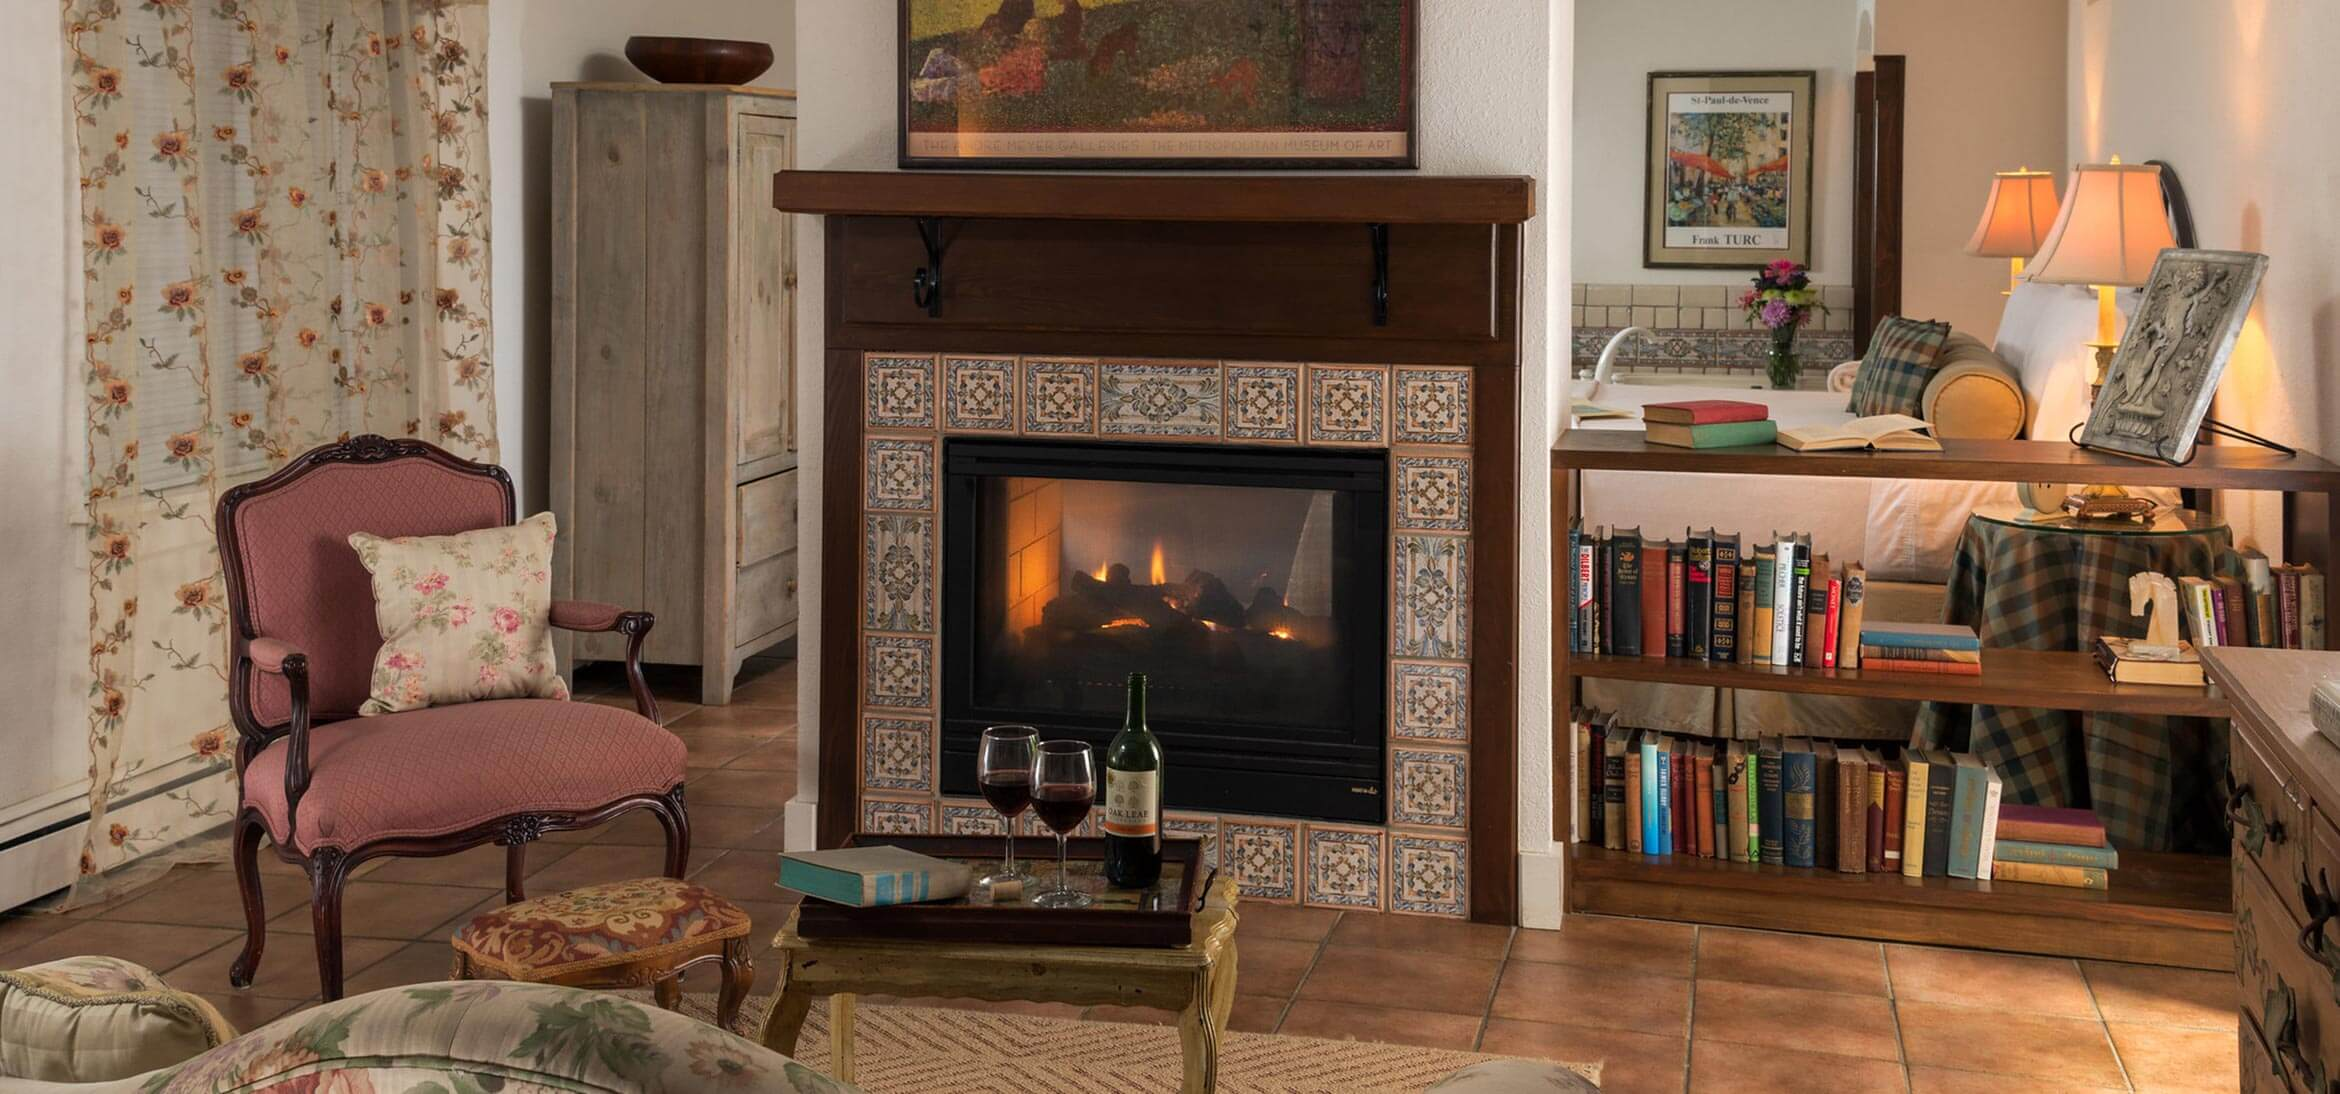 Vineyard Suite fireplace